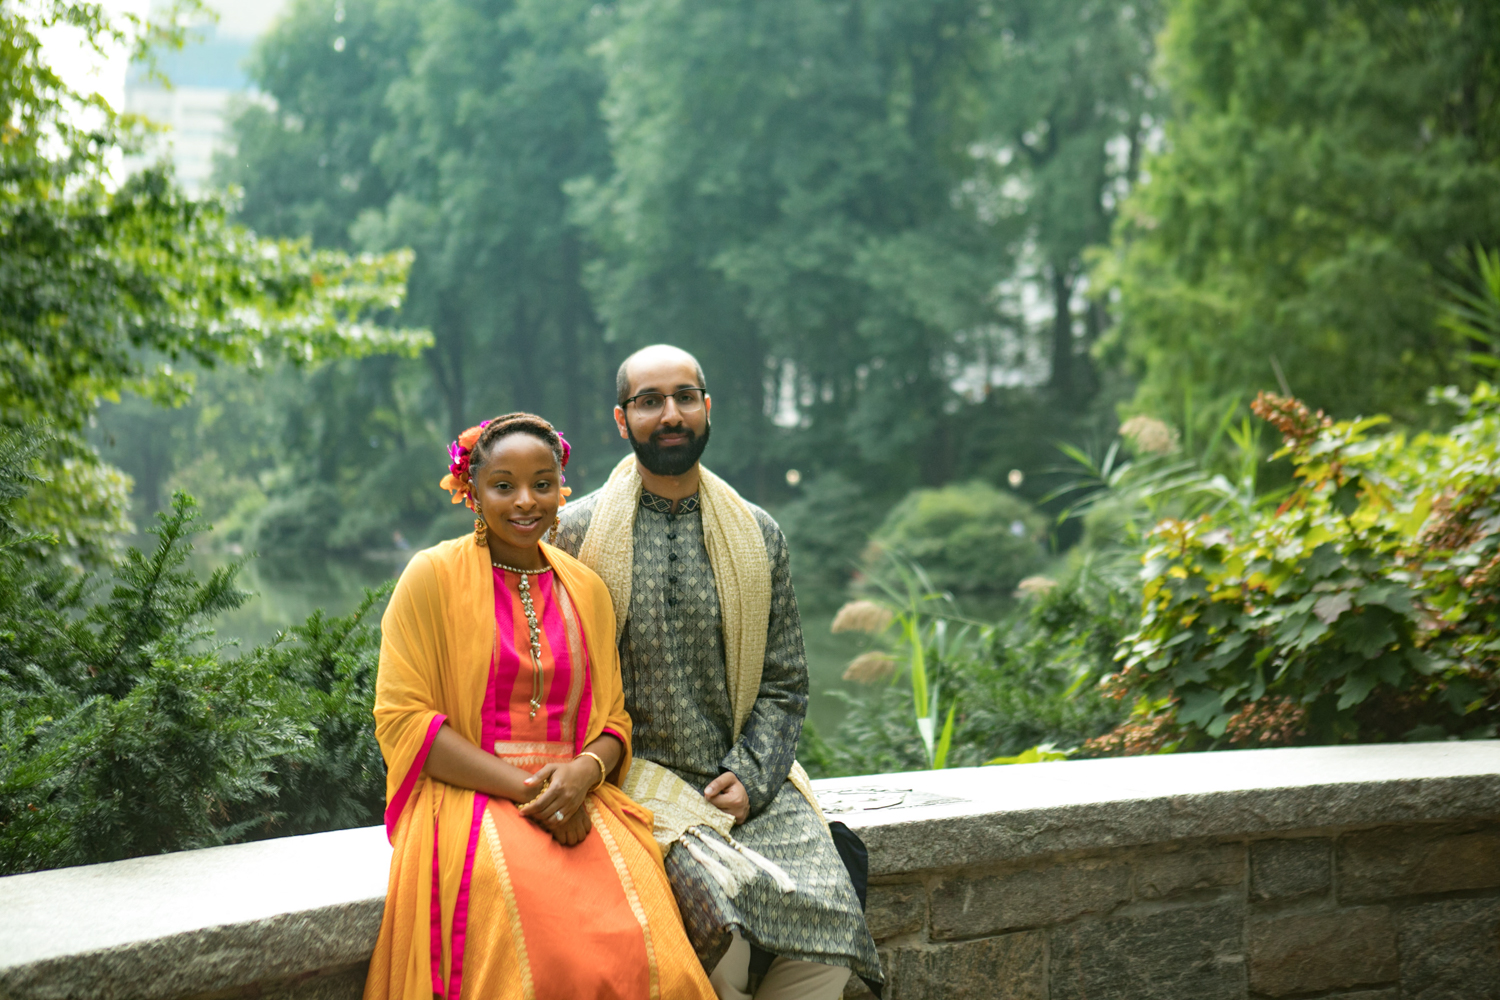 Portrait of the bride and groom in traditional Indian wedding attire.